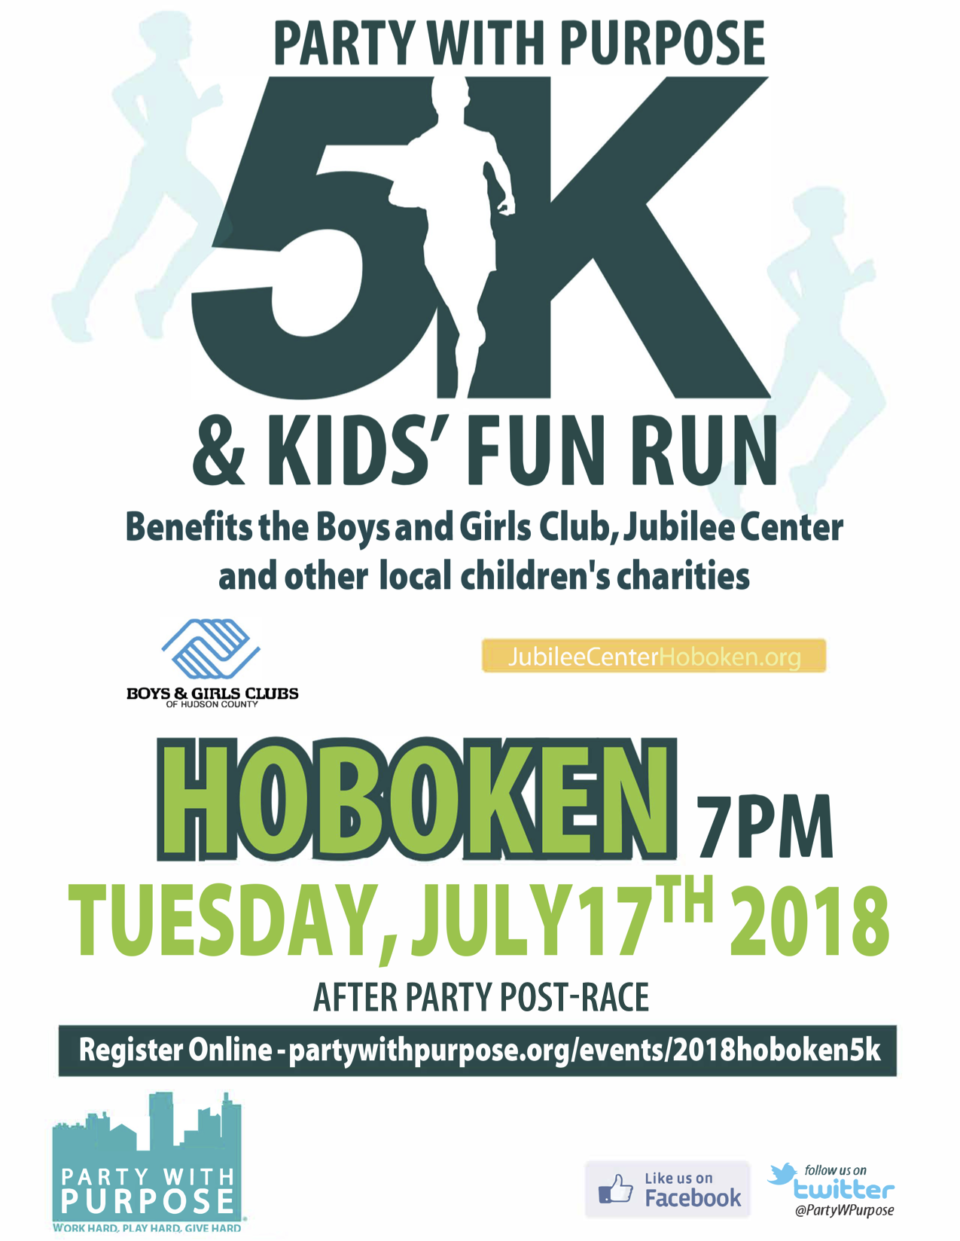 The Party With Purpose 5K in Hoboken